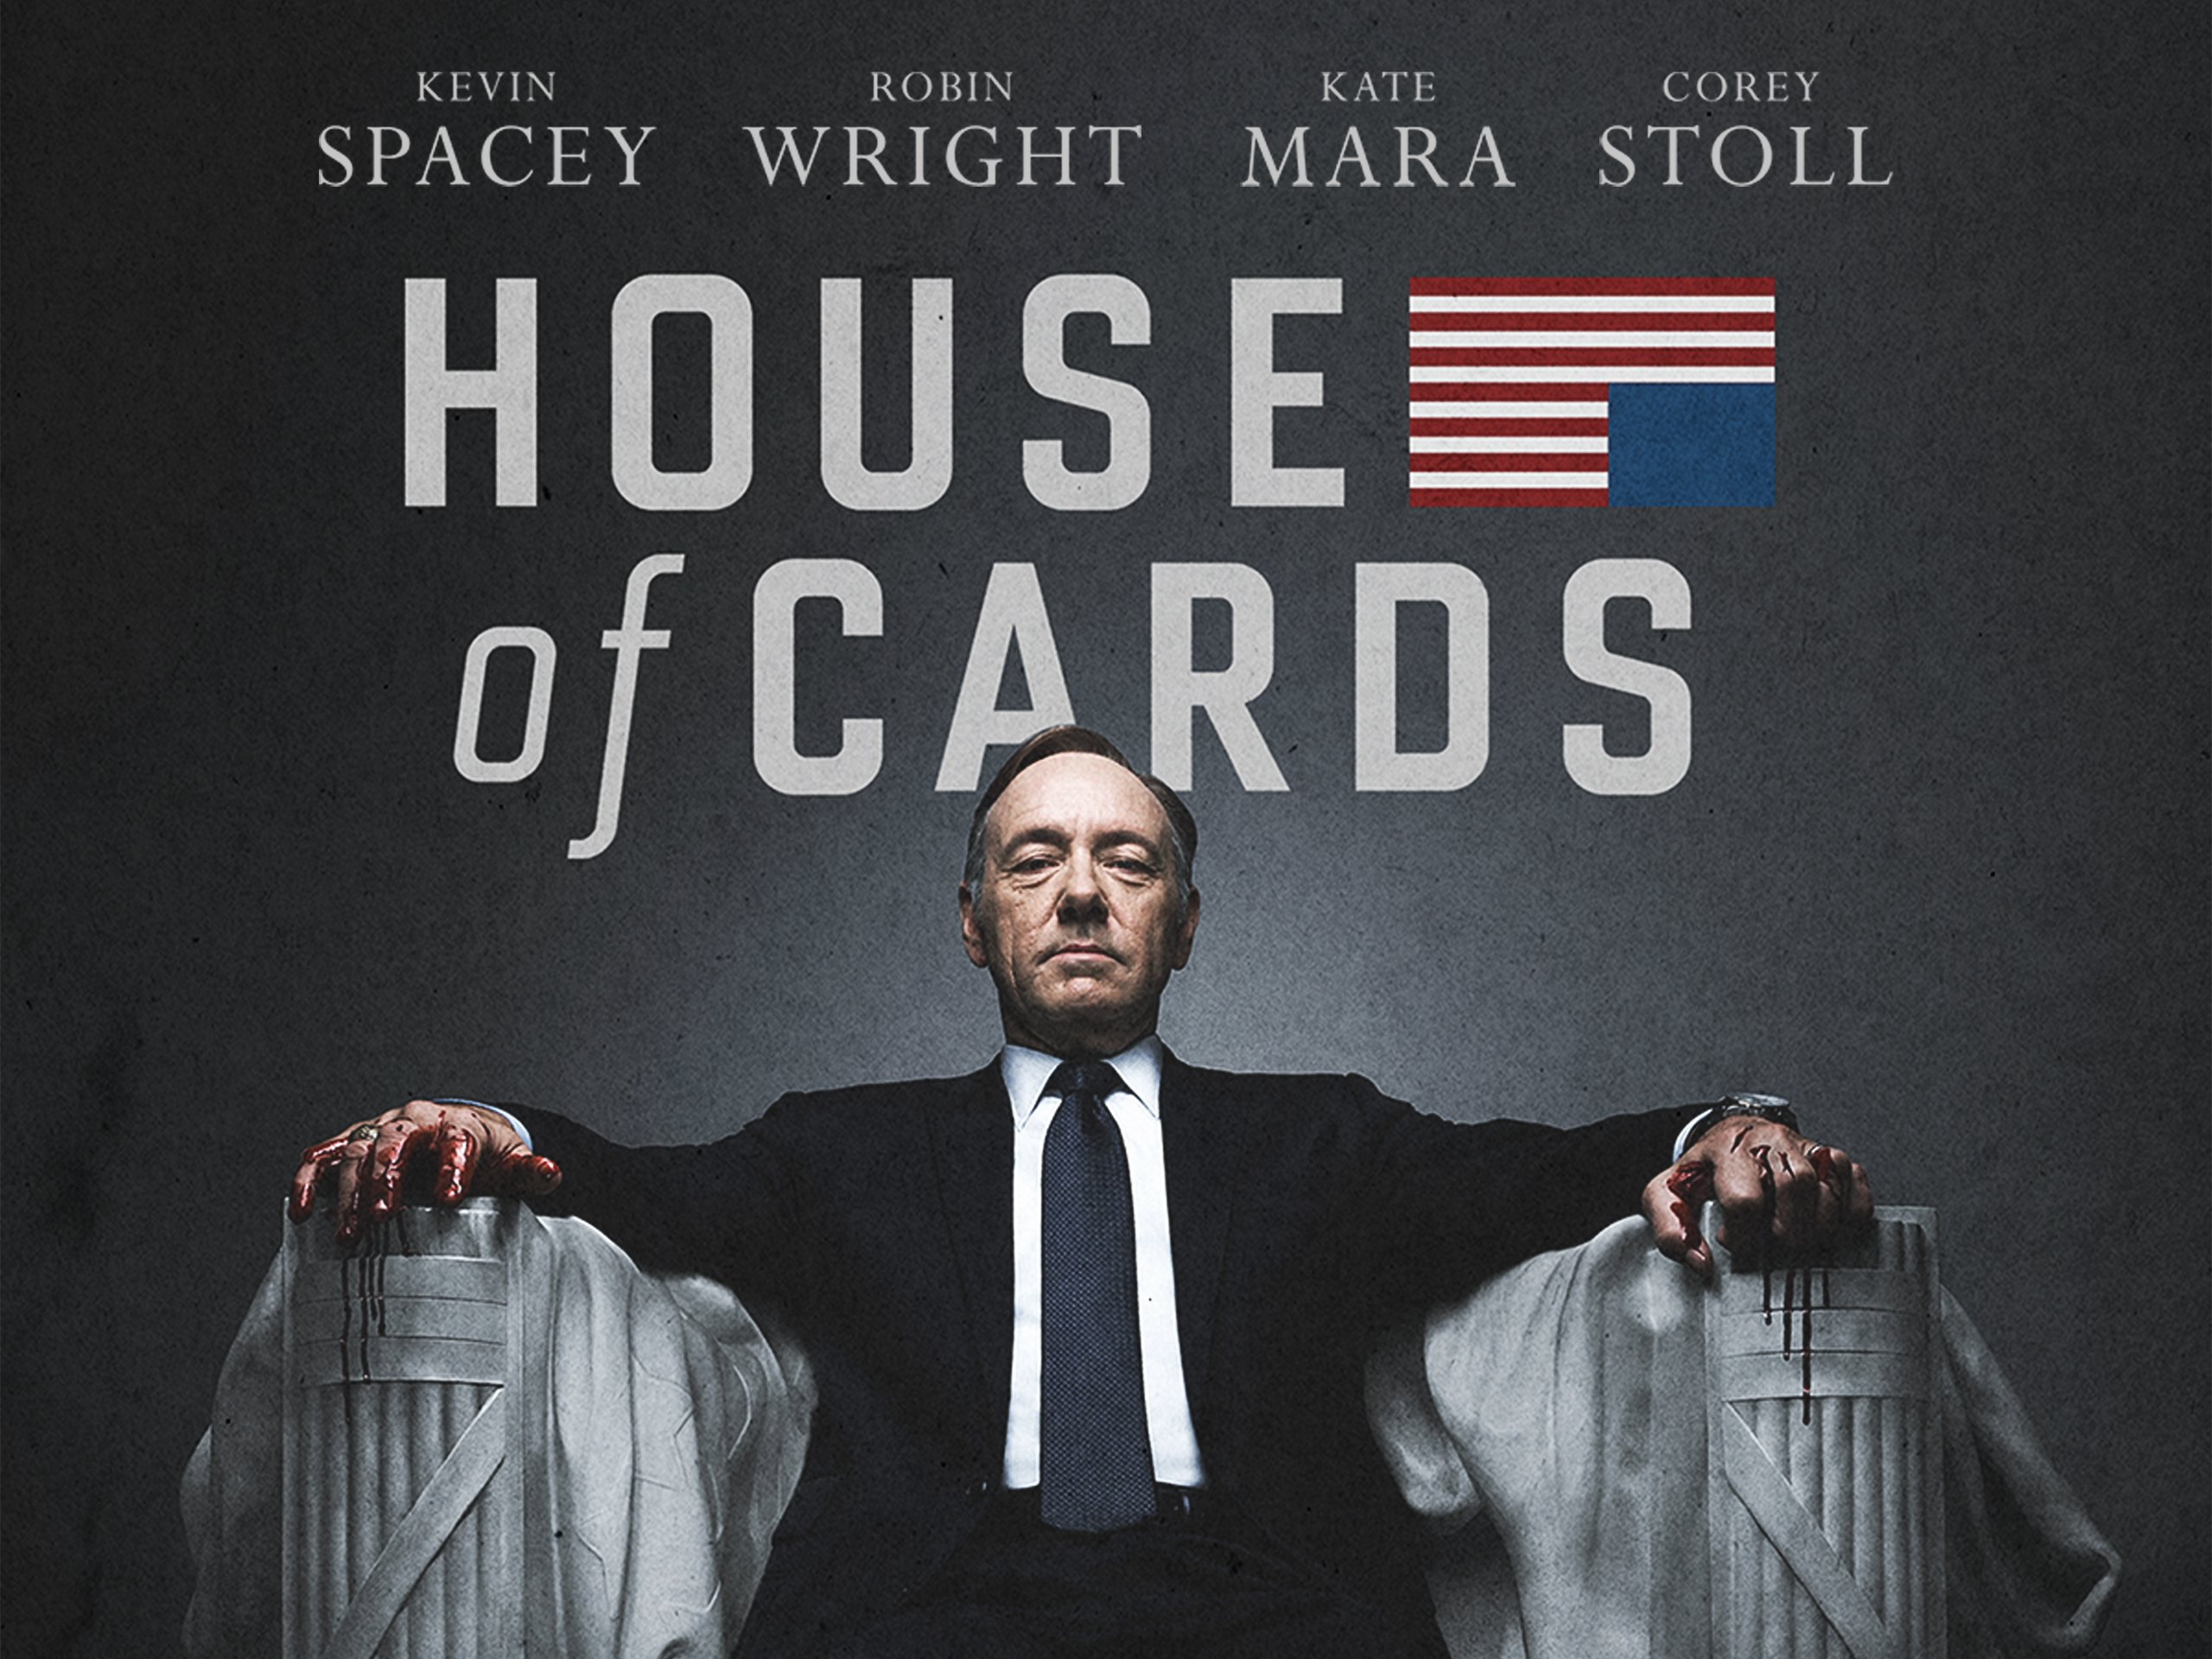 Amazon.com: House of Cards Season 1: Kevin Spacey, Robin Wright ...